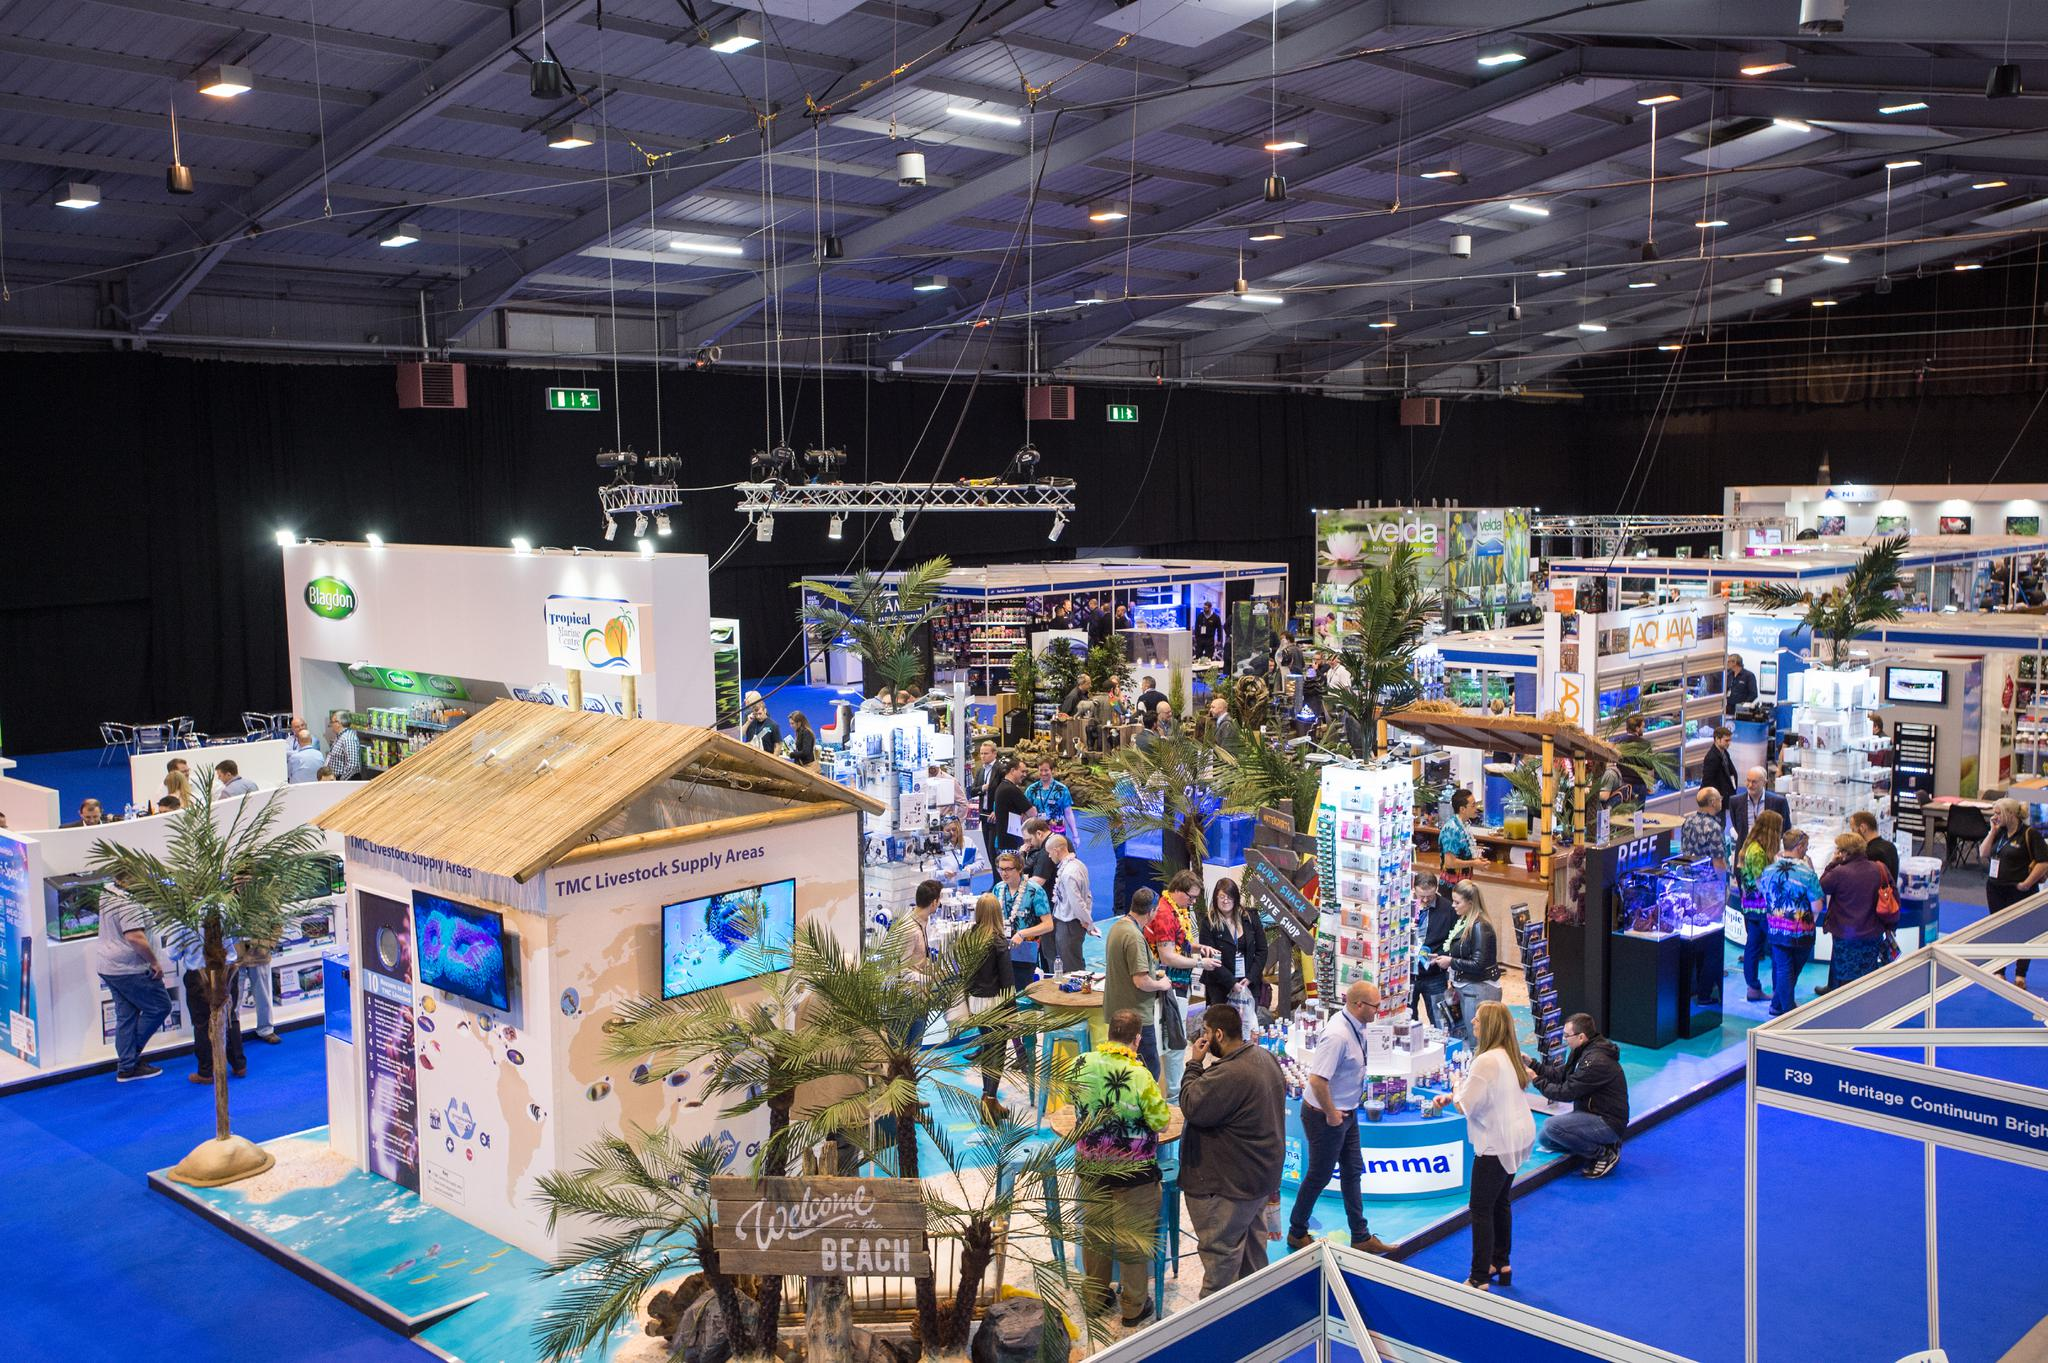 Interest grows in AQUA as dates and venue confirmed for 2019 show